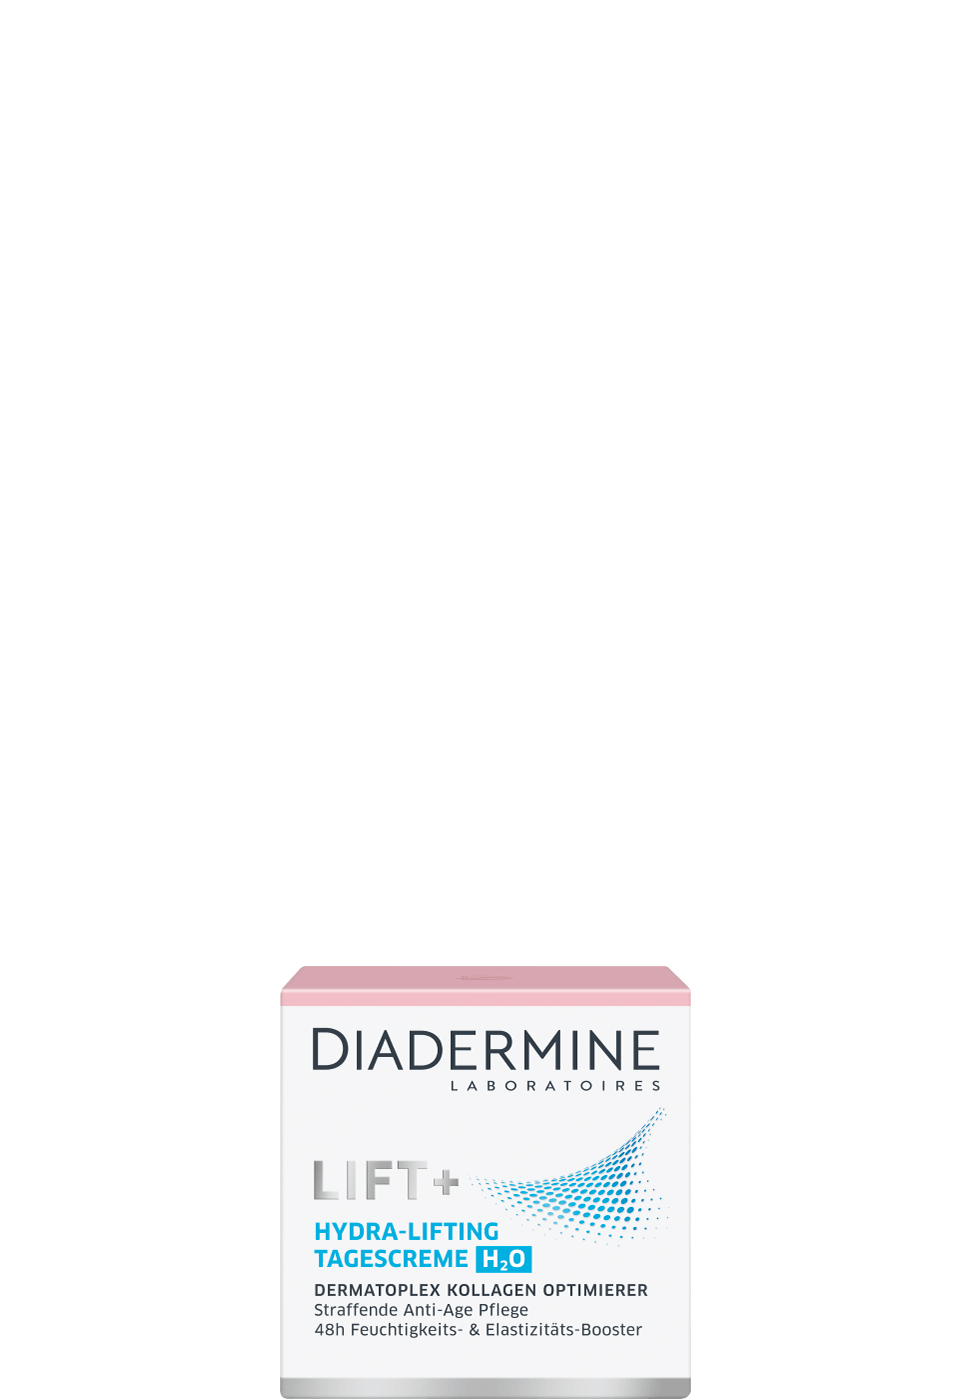 diadermine_de_lift_plus_hydra_lifting_tagescreme_h2o_970x1400